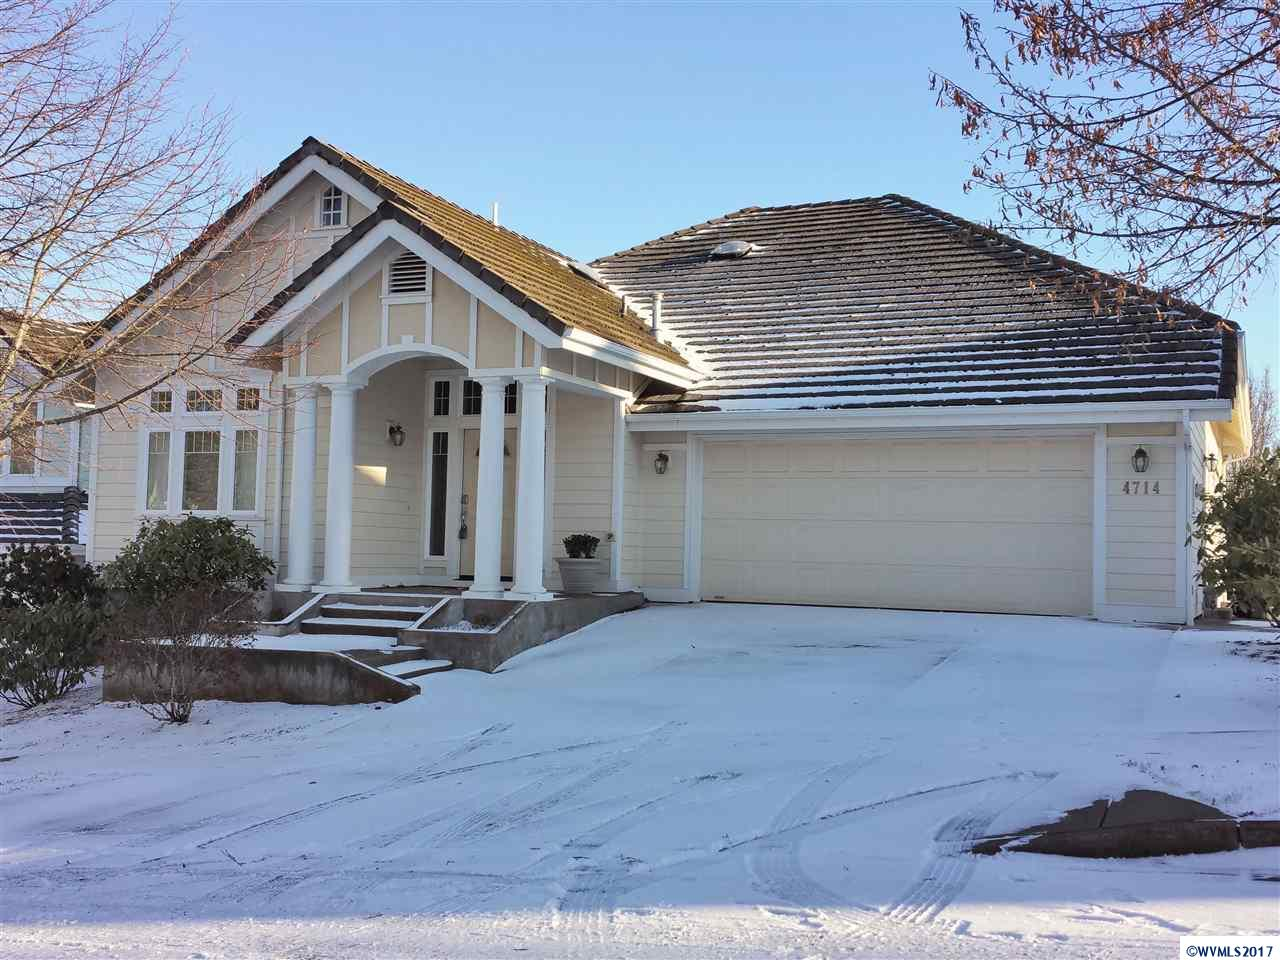 4714 Nw Veronica Corvallis, OR 97330